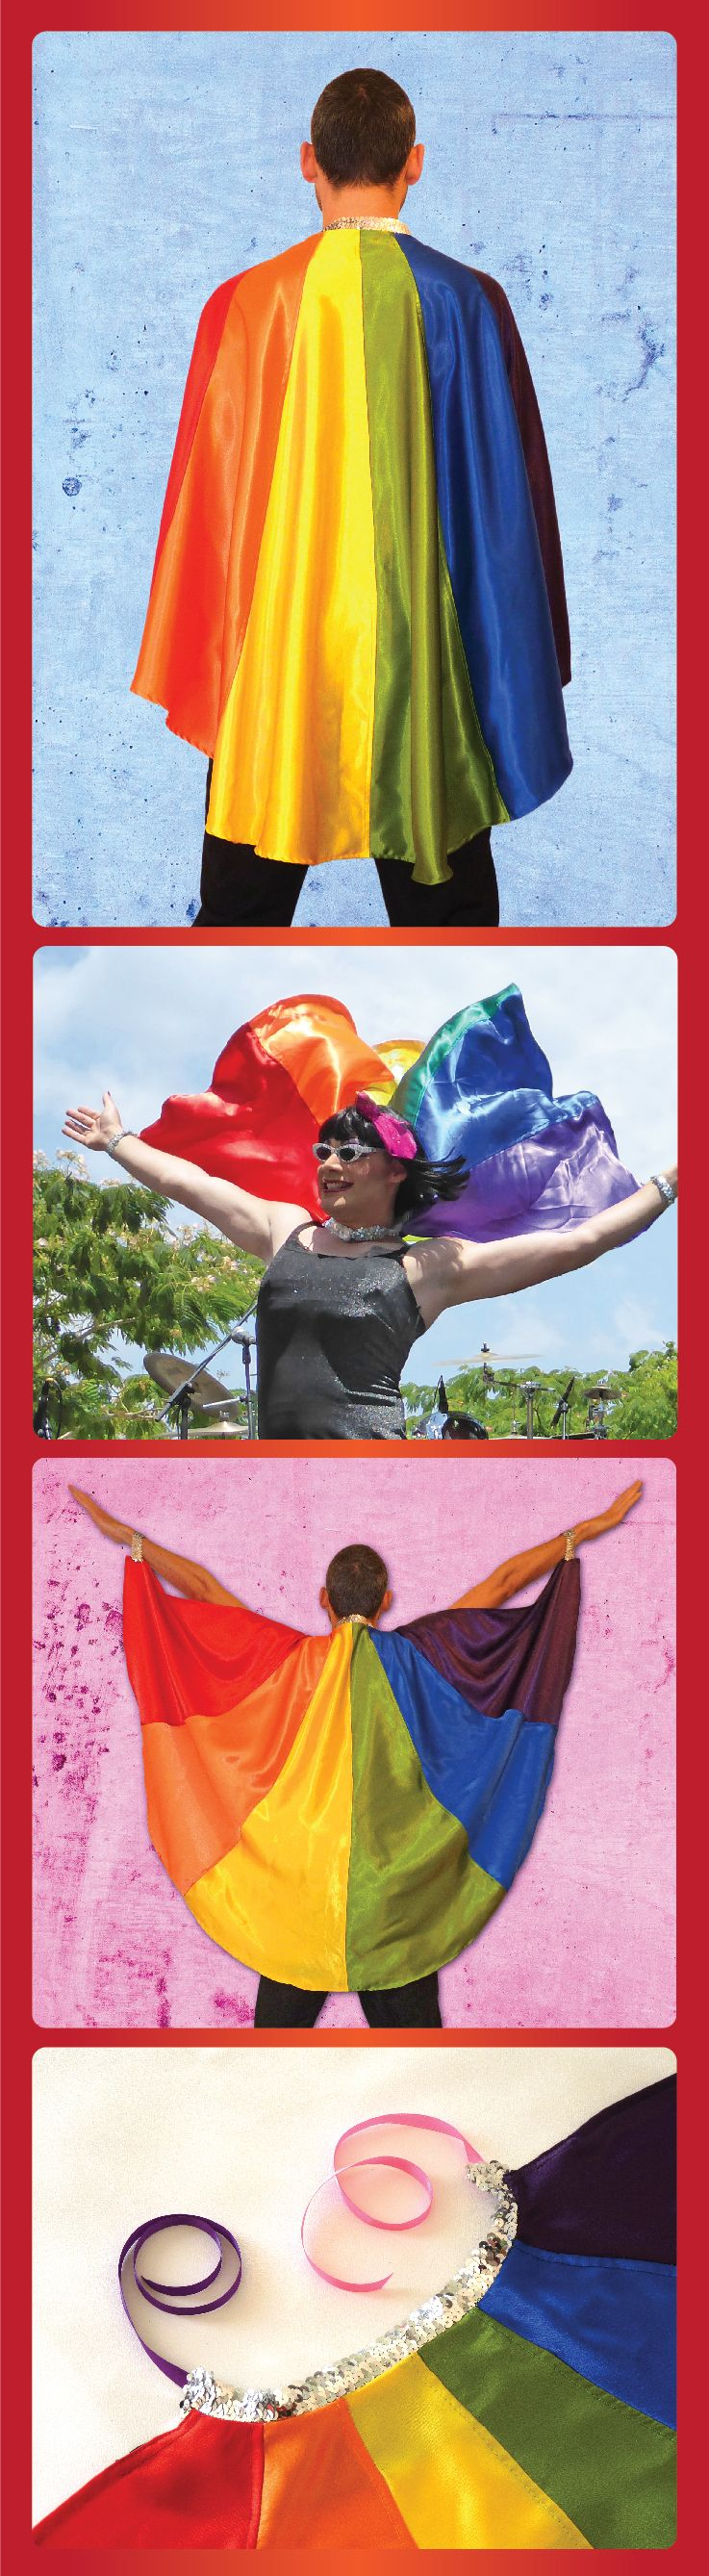 62968bee75357 A fabulous colorful pride clothing